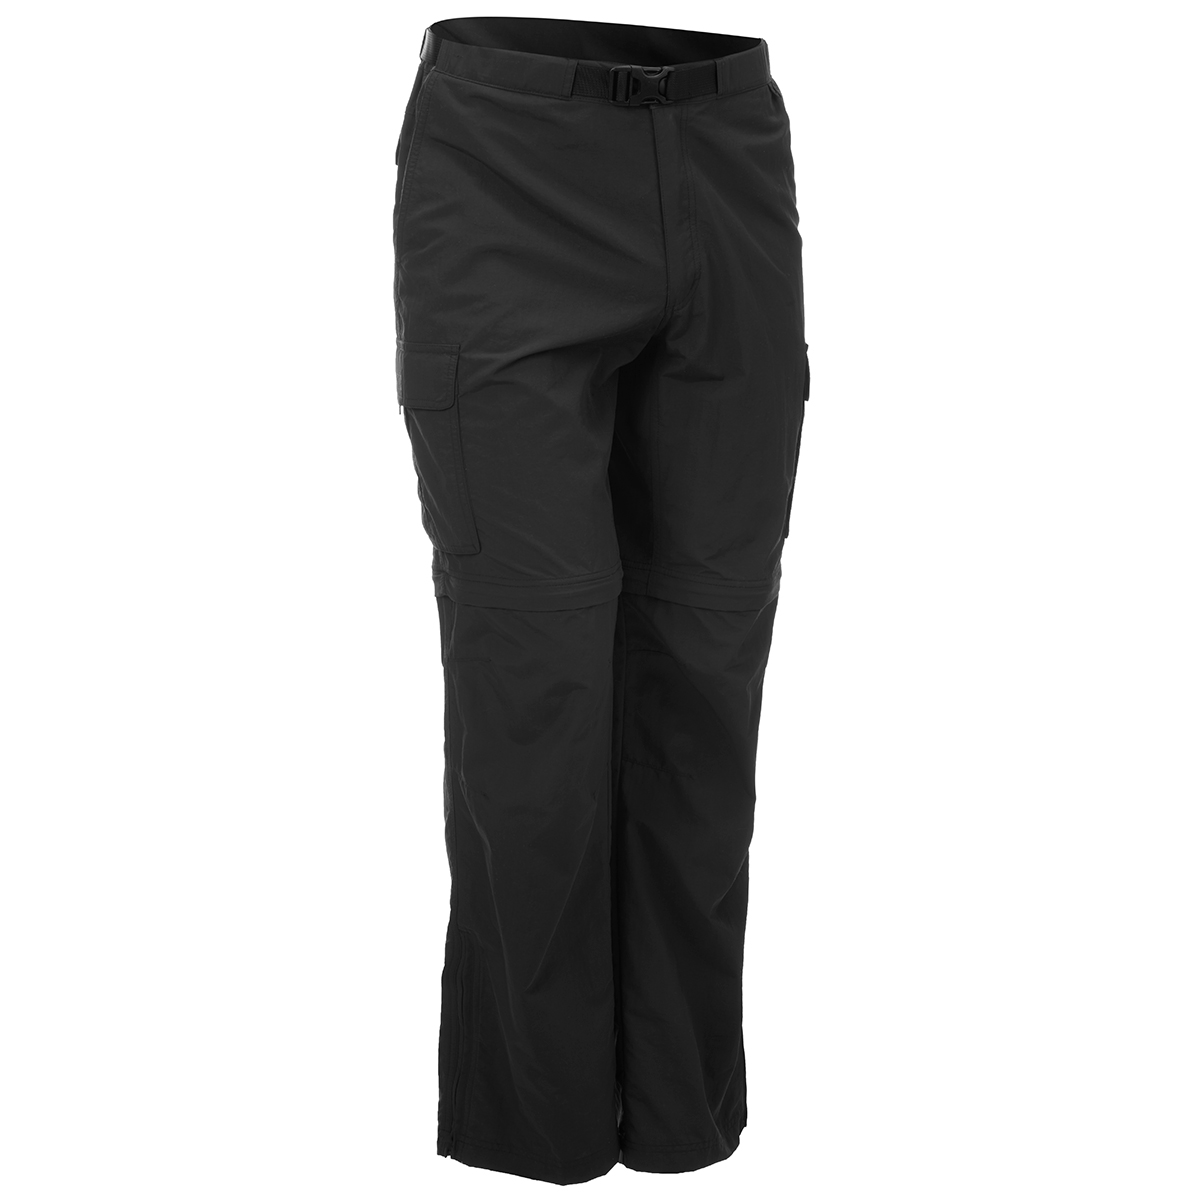 Ems Men's Camp Cargo Zip-Off Pants - Black, 28/32